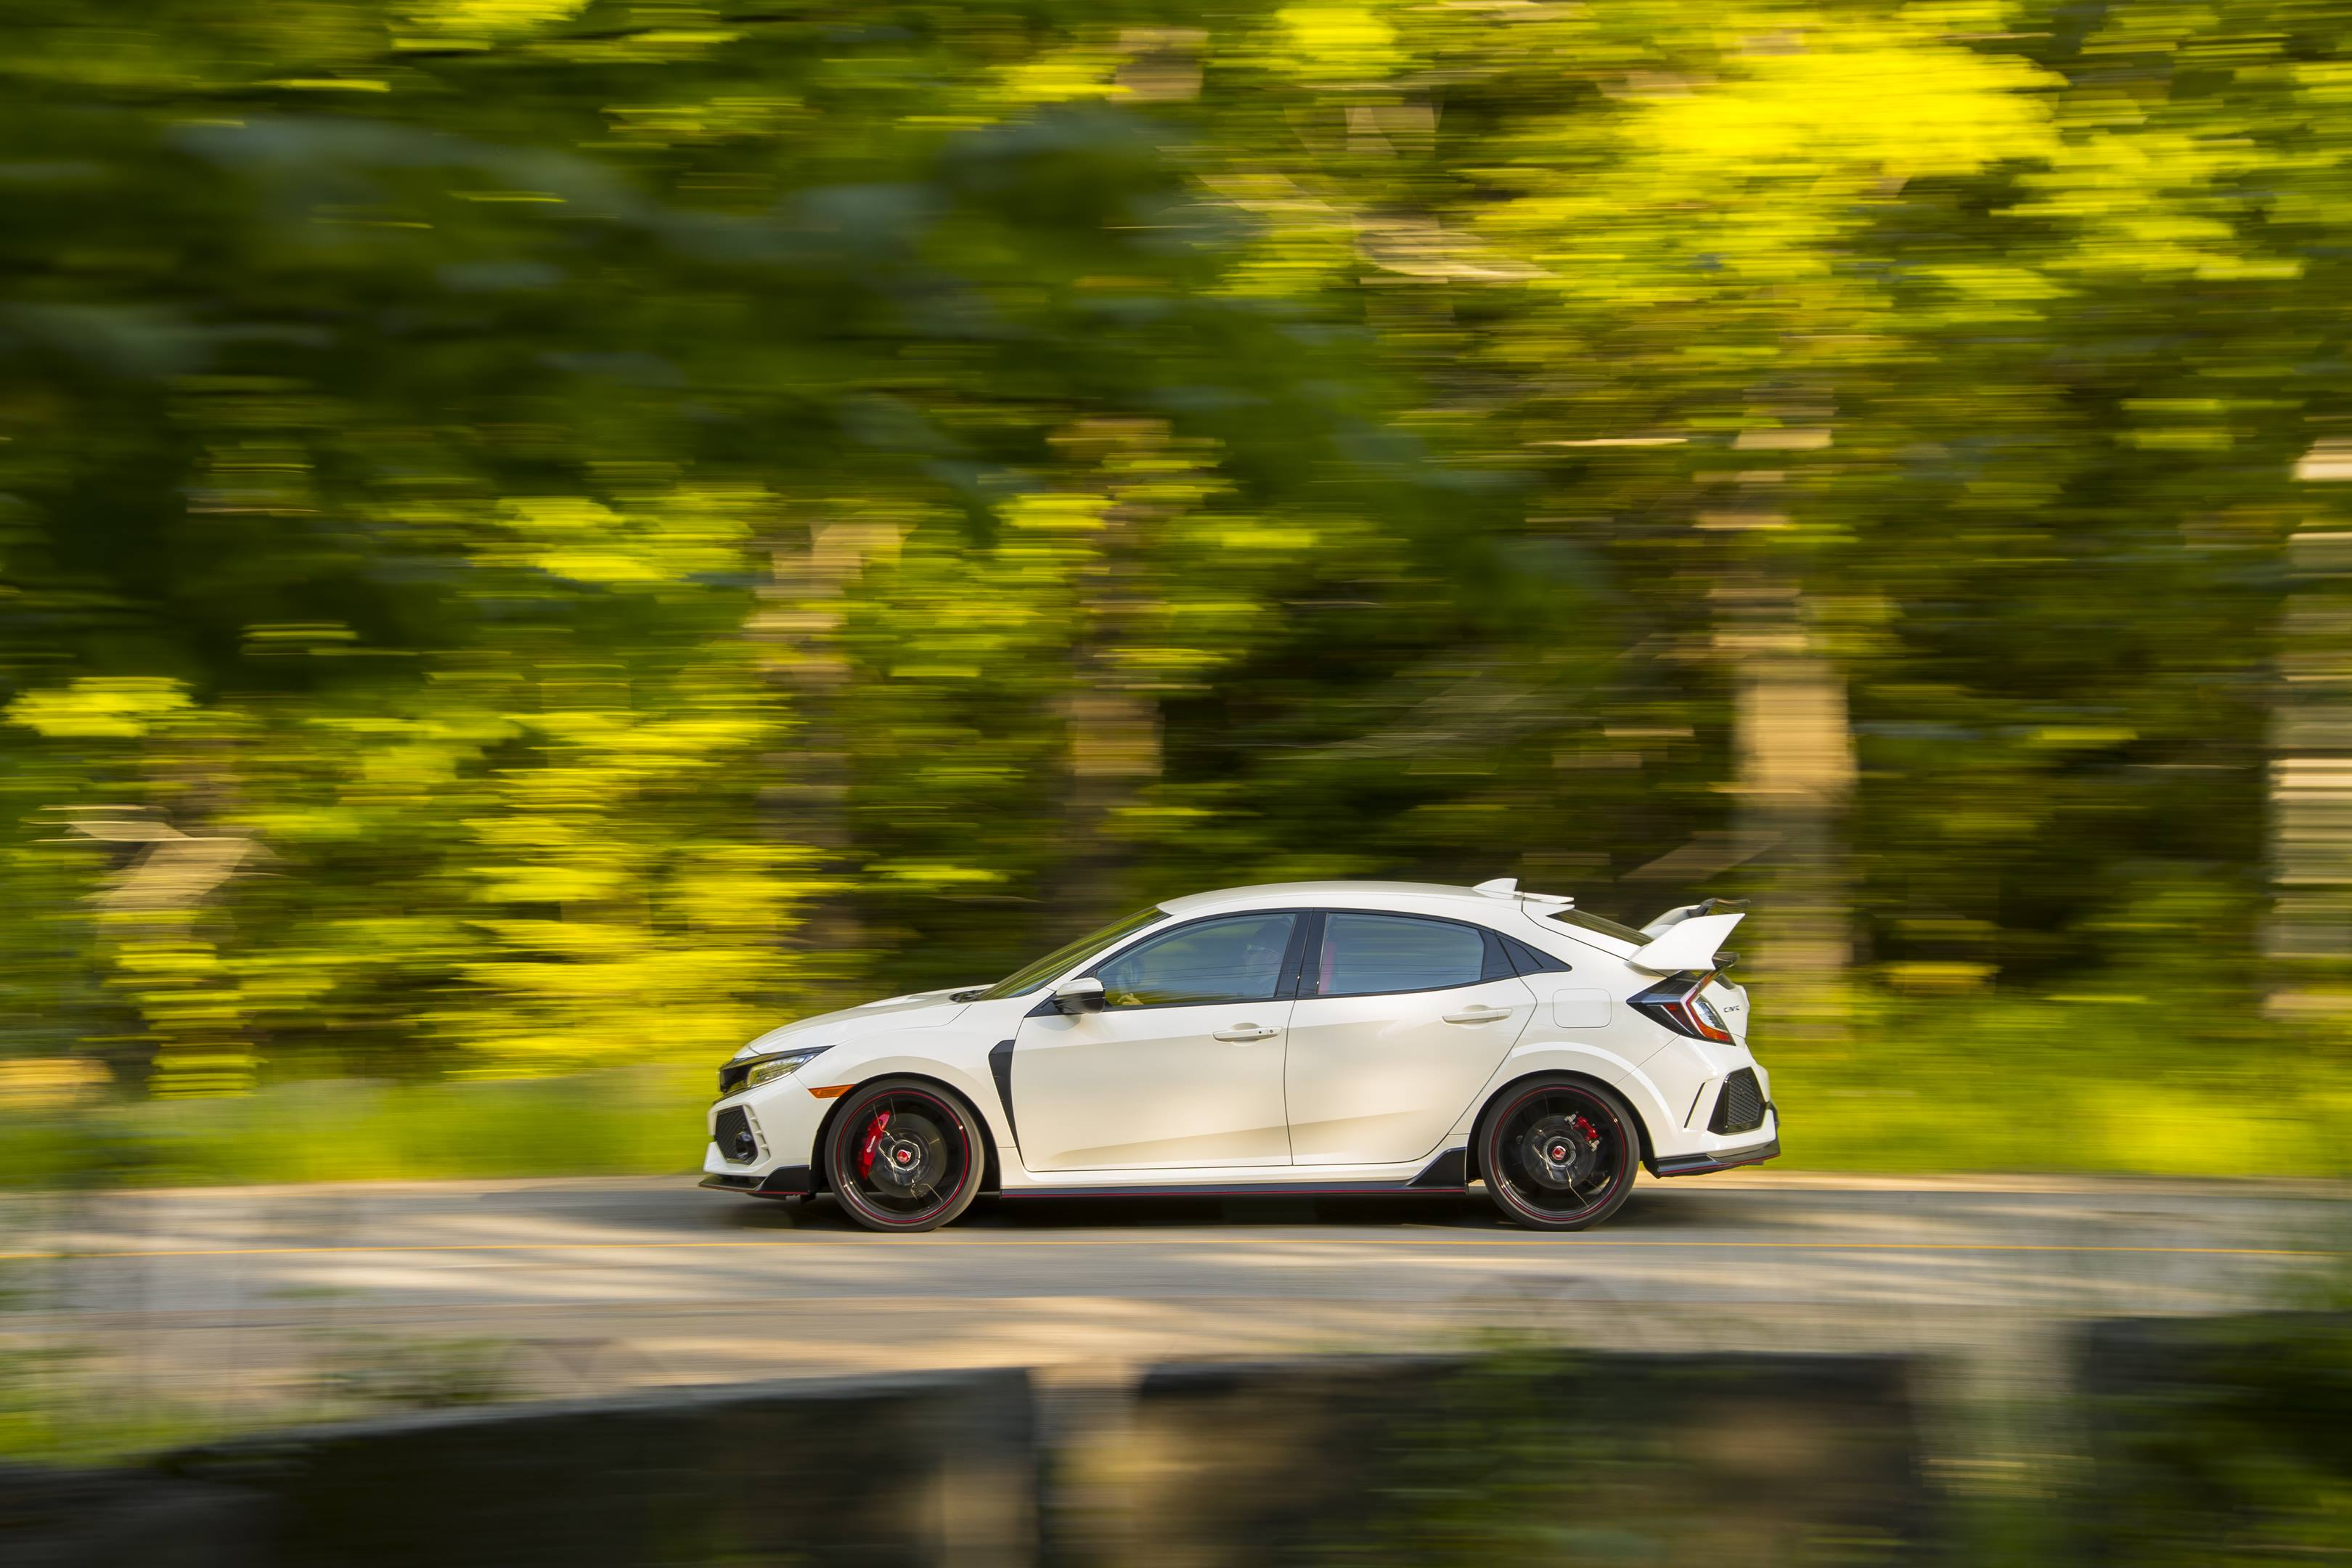 2017 Honda Civic Type R driving profile